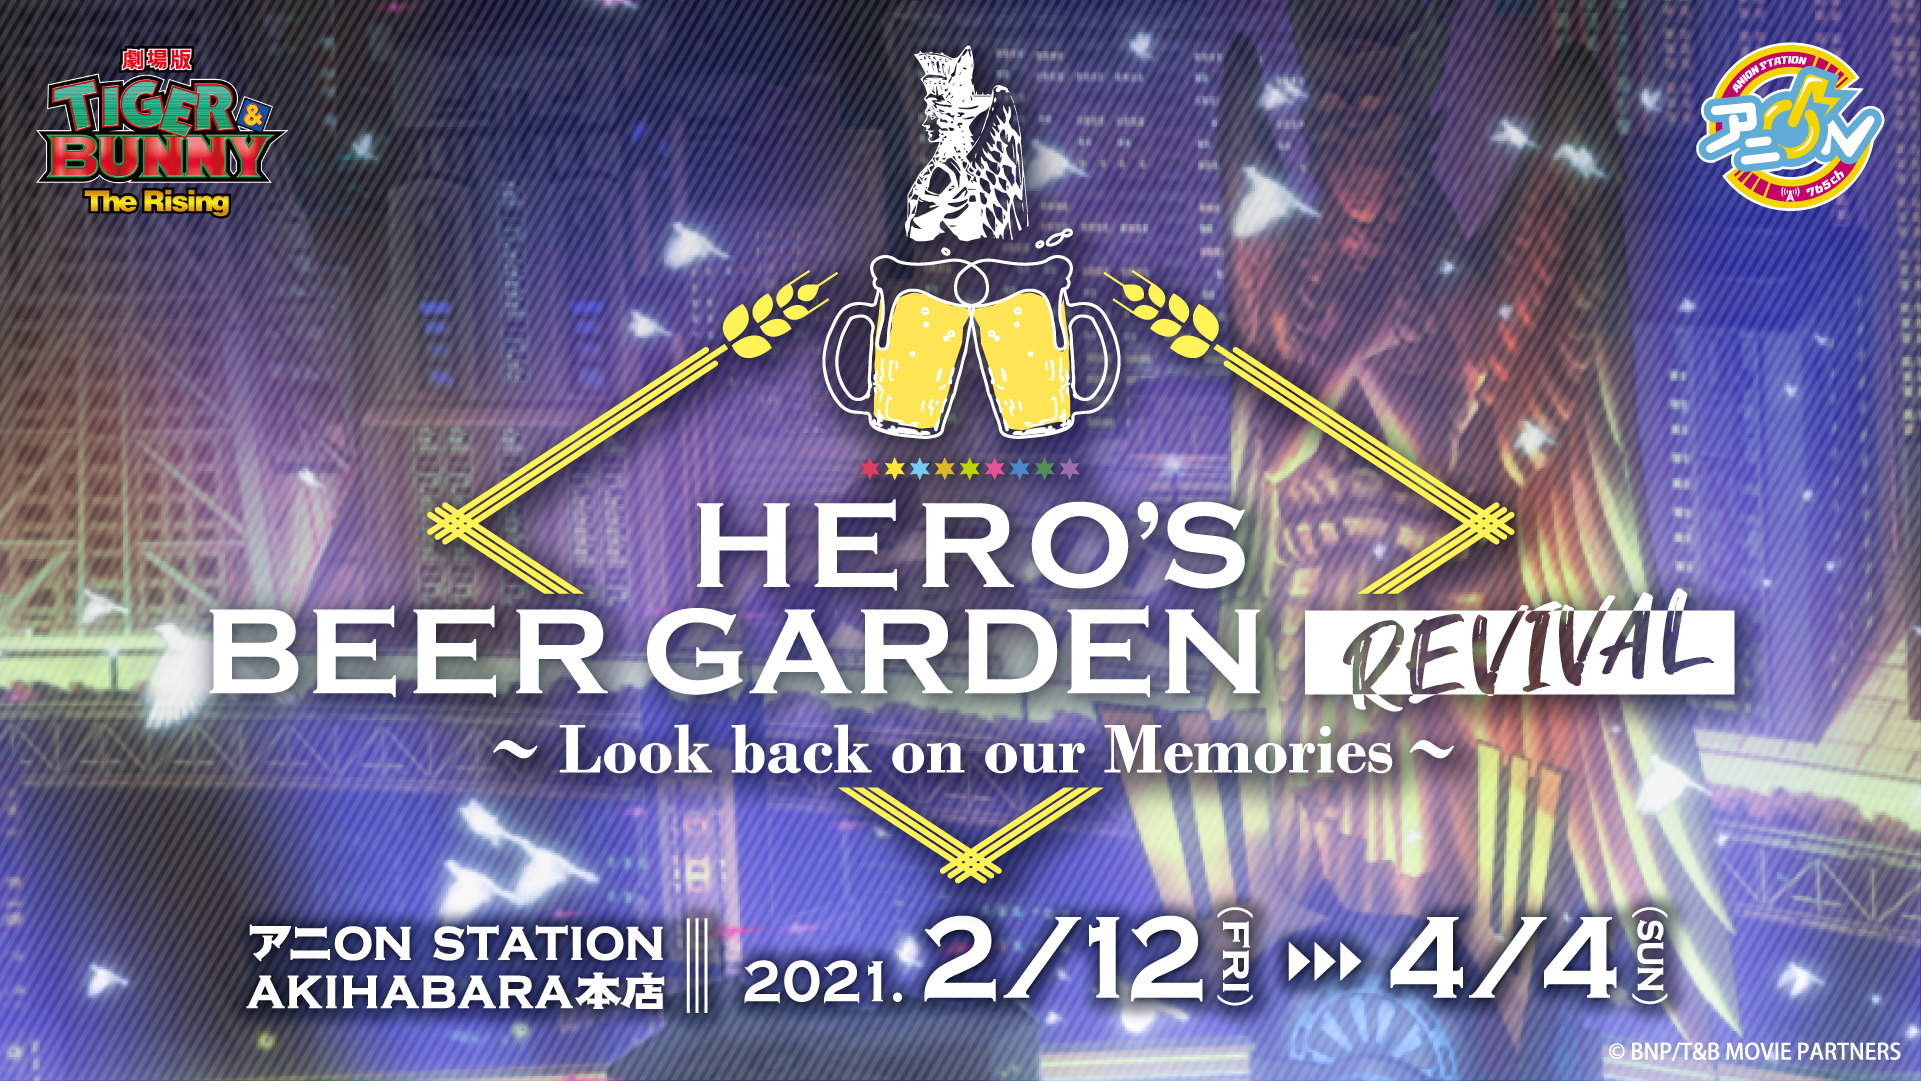 【2/25】HERO'S BEER GARDEN Revival